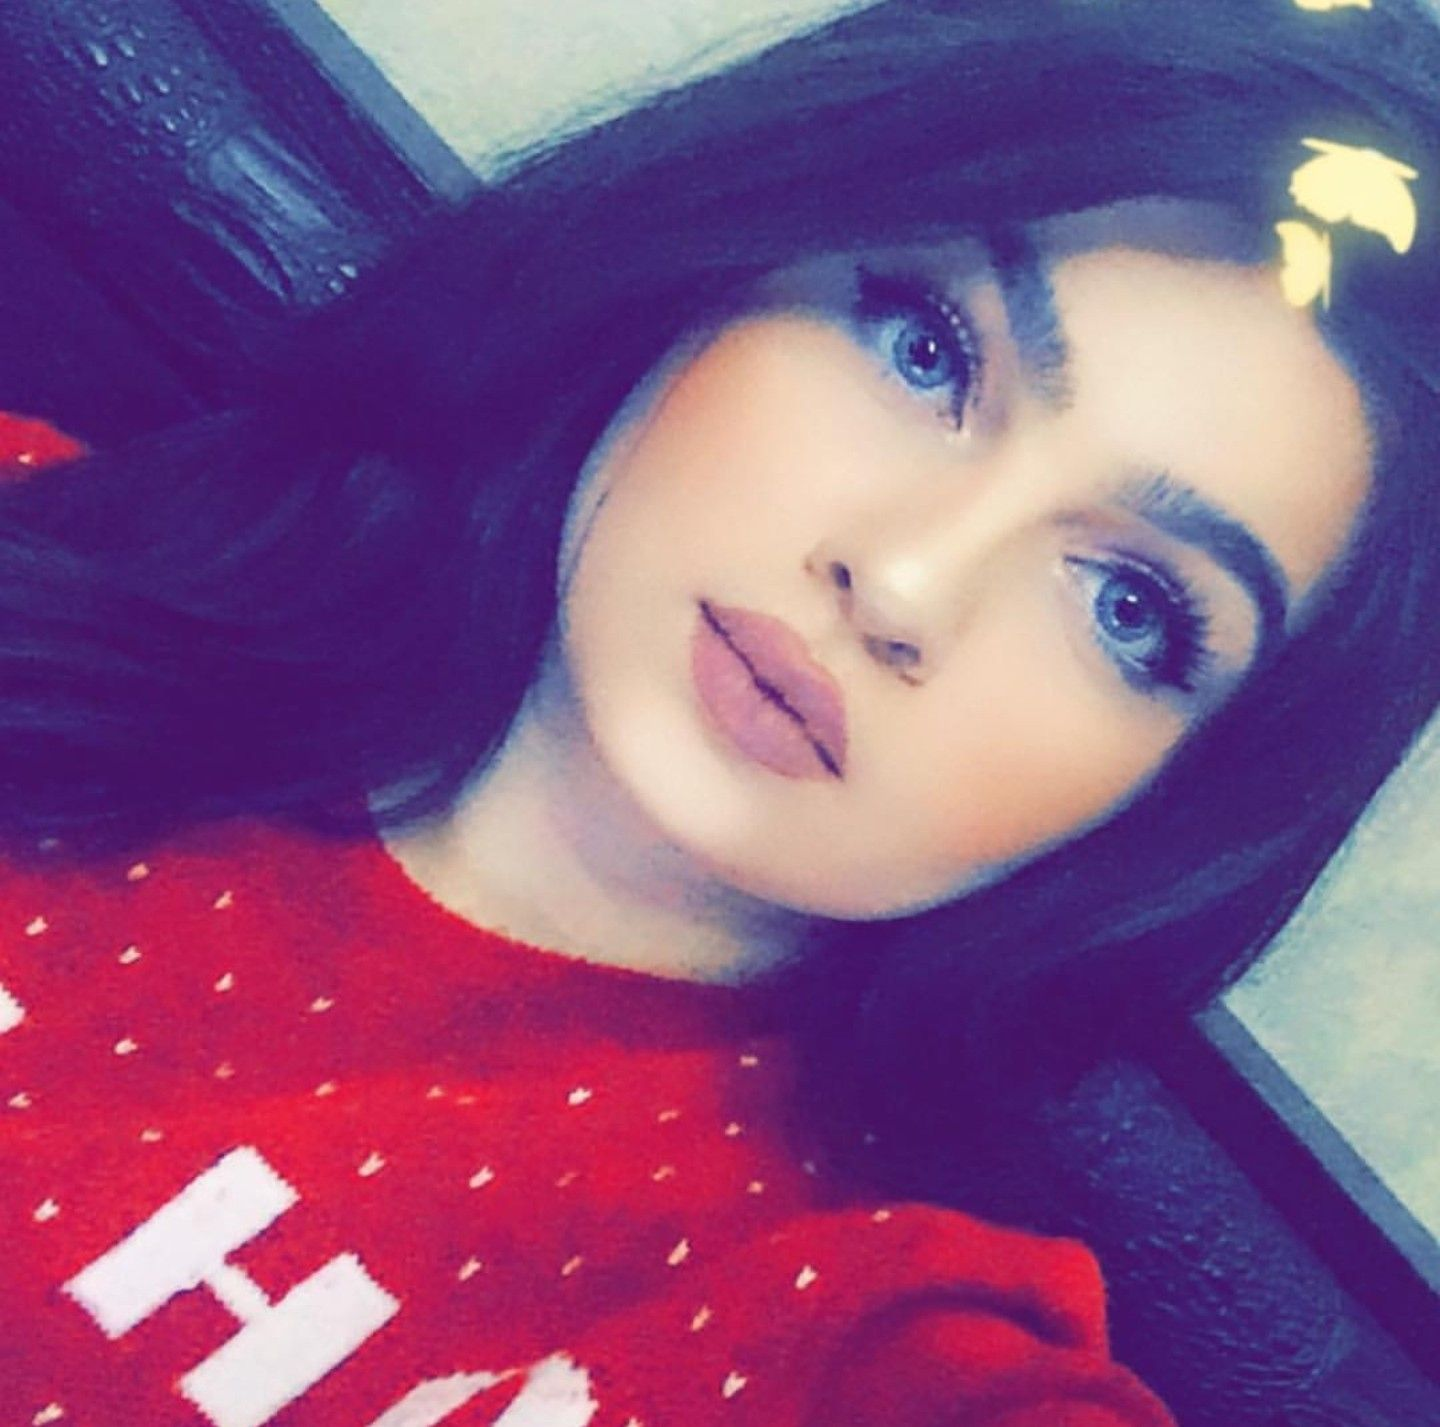 Pin By شهد جوجو On نور In 2020 Bad Girl Aesthetic Cute Girl Face Beautiful Girl Image